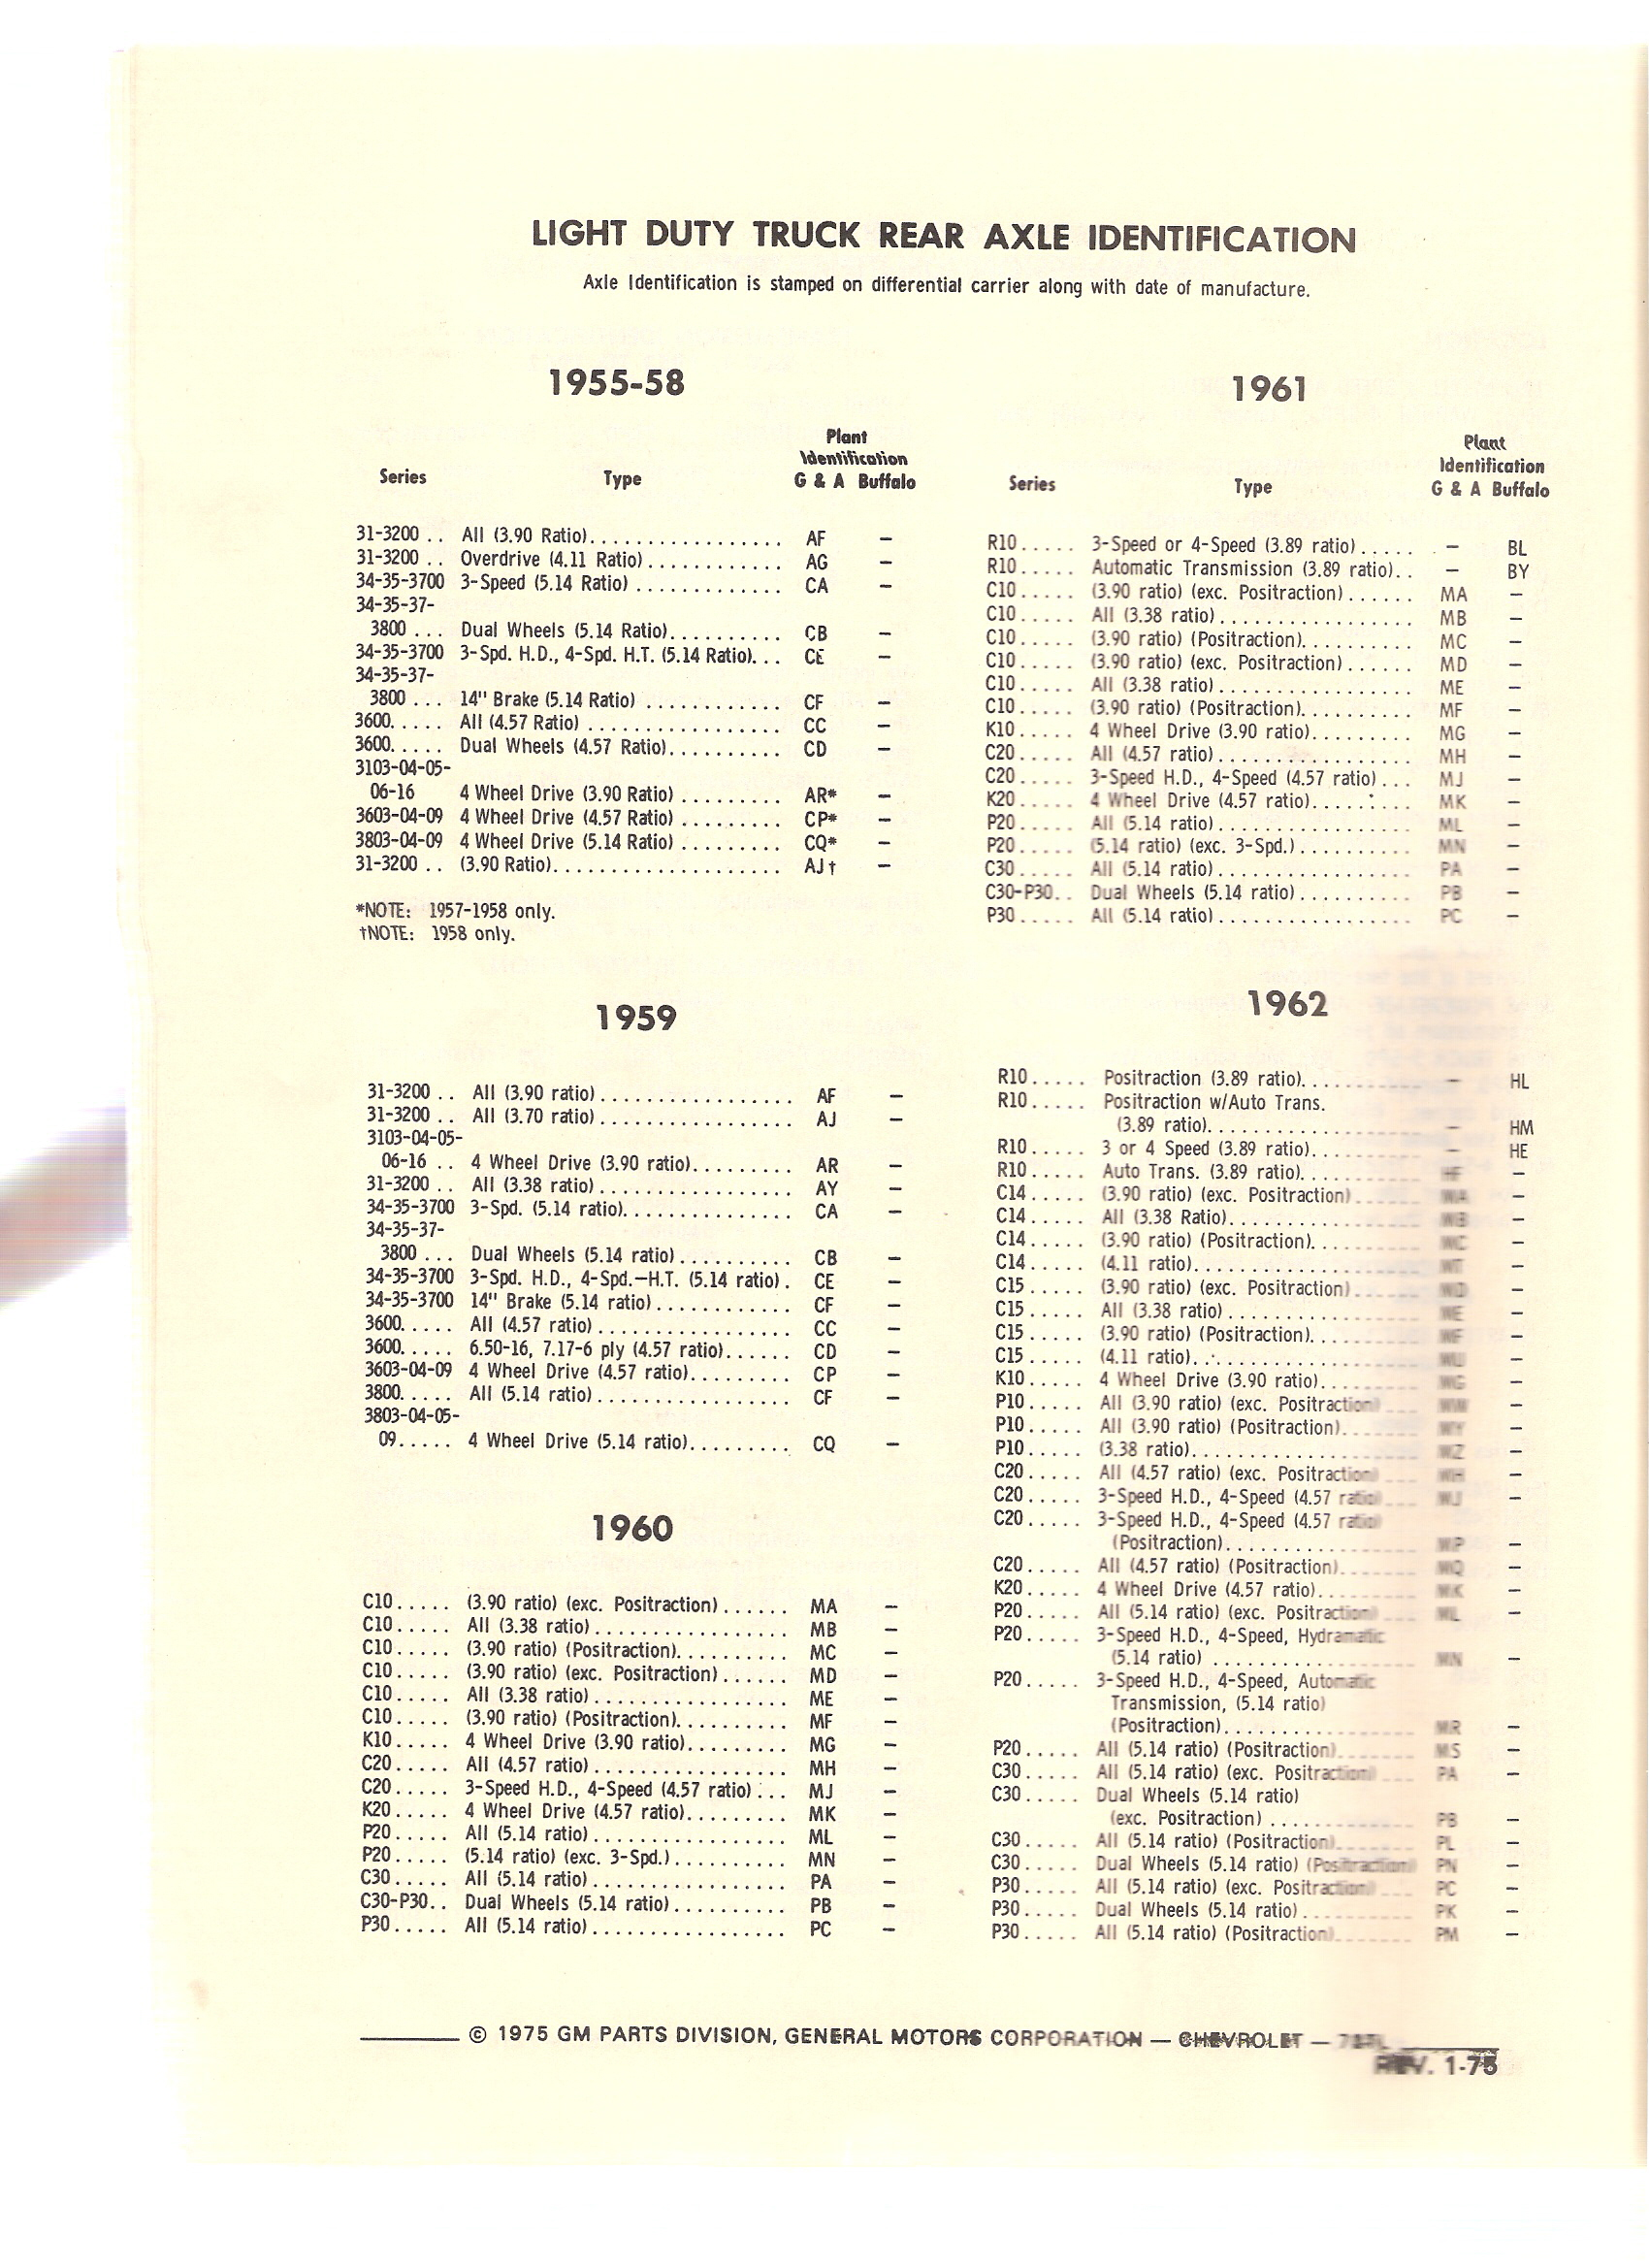 1955 Chevrolet Heater Switch Wiring Diagram as well 1956 Chevrolet Wiring Diagram As Well Chevy Ignition moreover 67 72 Chevy Truck Parts besides 1966 Ford F100 Dash Wiring Diagram as well 1965 Chevy C10 Vin Number Location. on 1963 c10 chevy truck wiring diagram